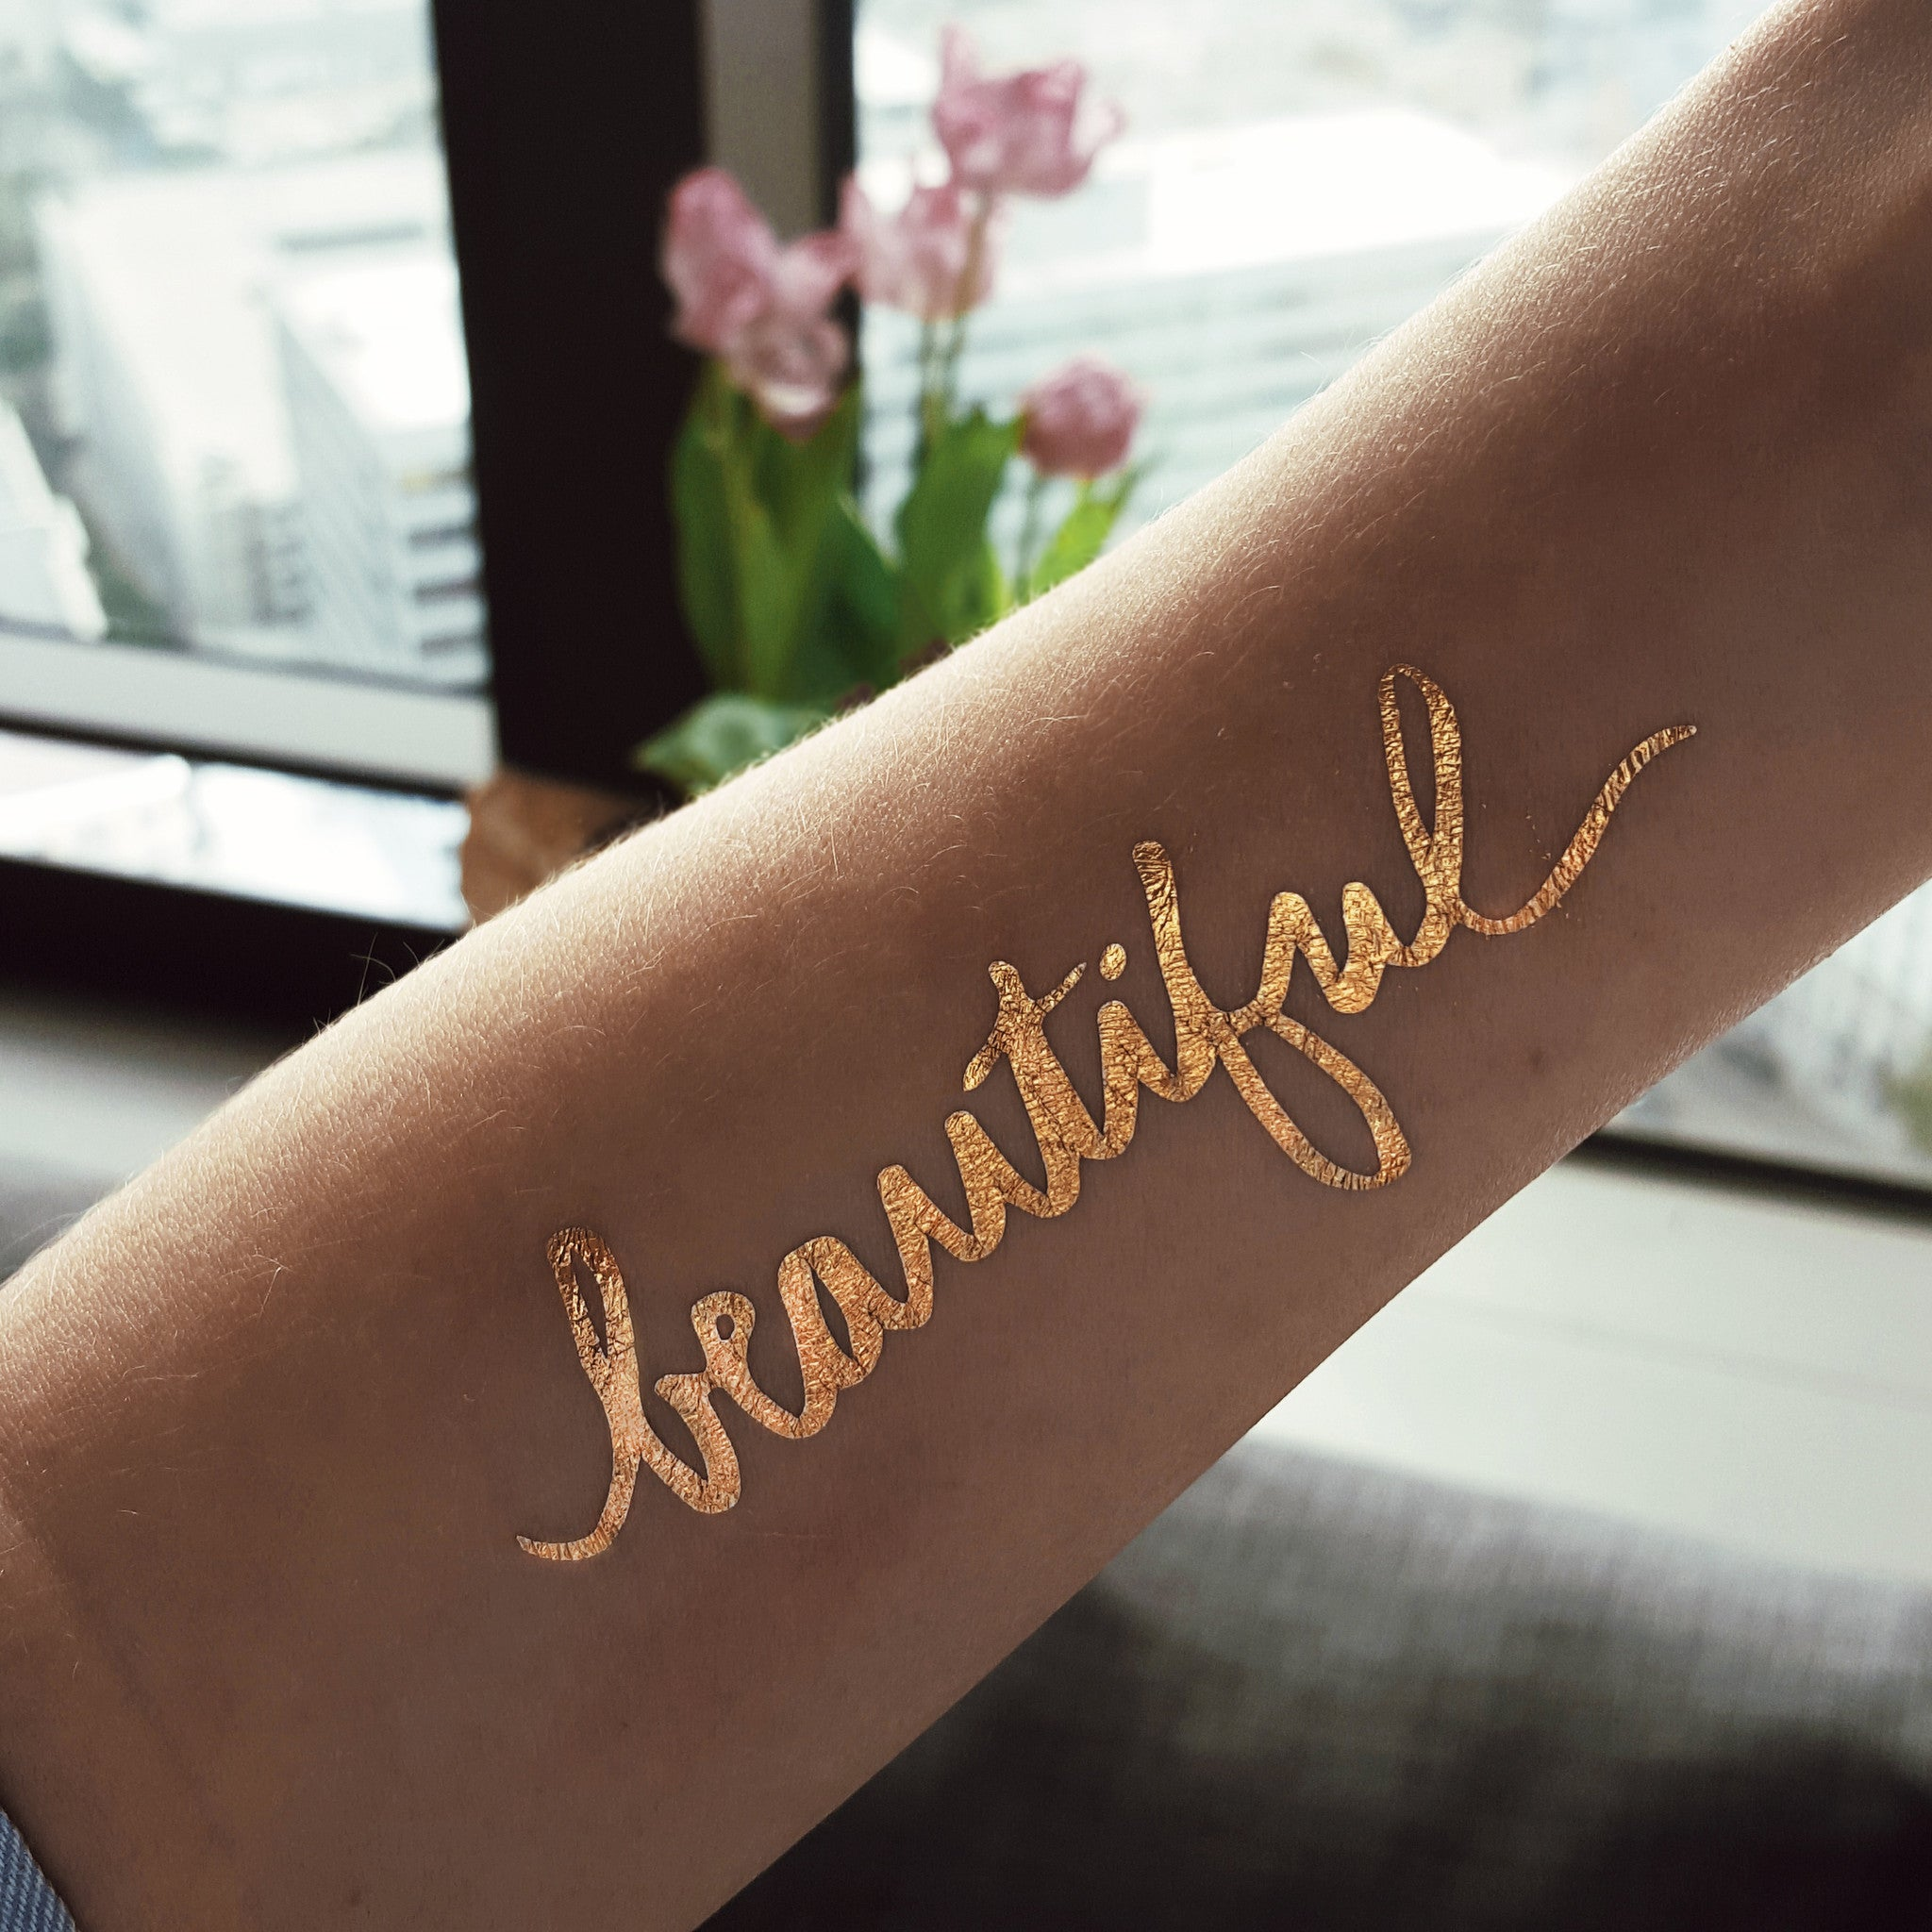 Gold Tattoo Ink: Beautiful Script Metallic Temporary Flash Tattoo